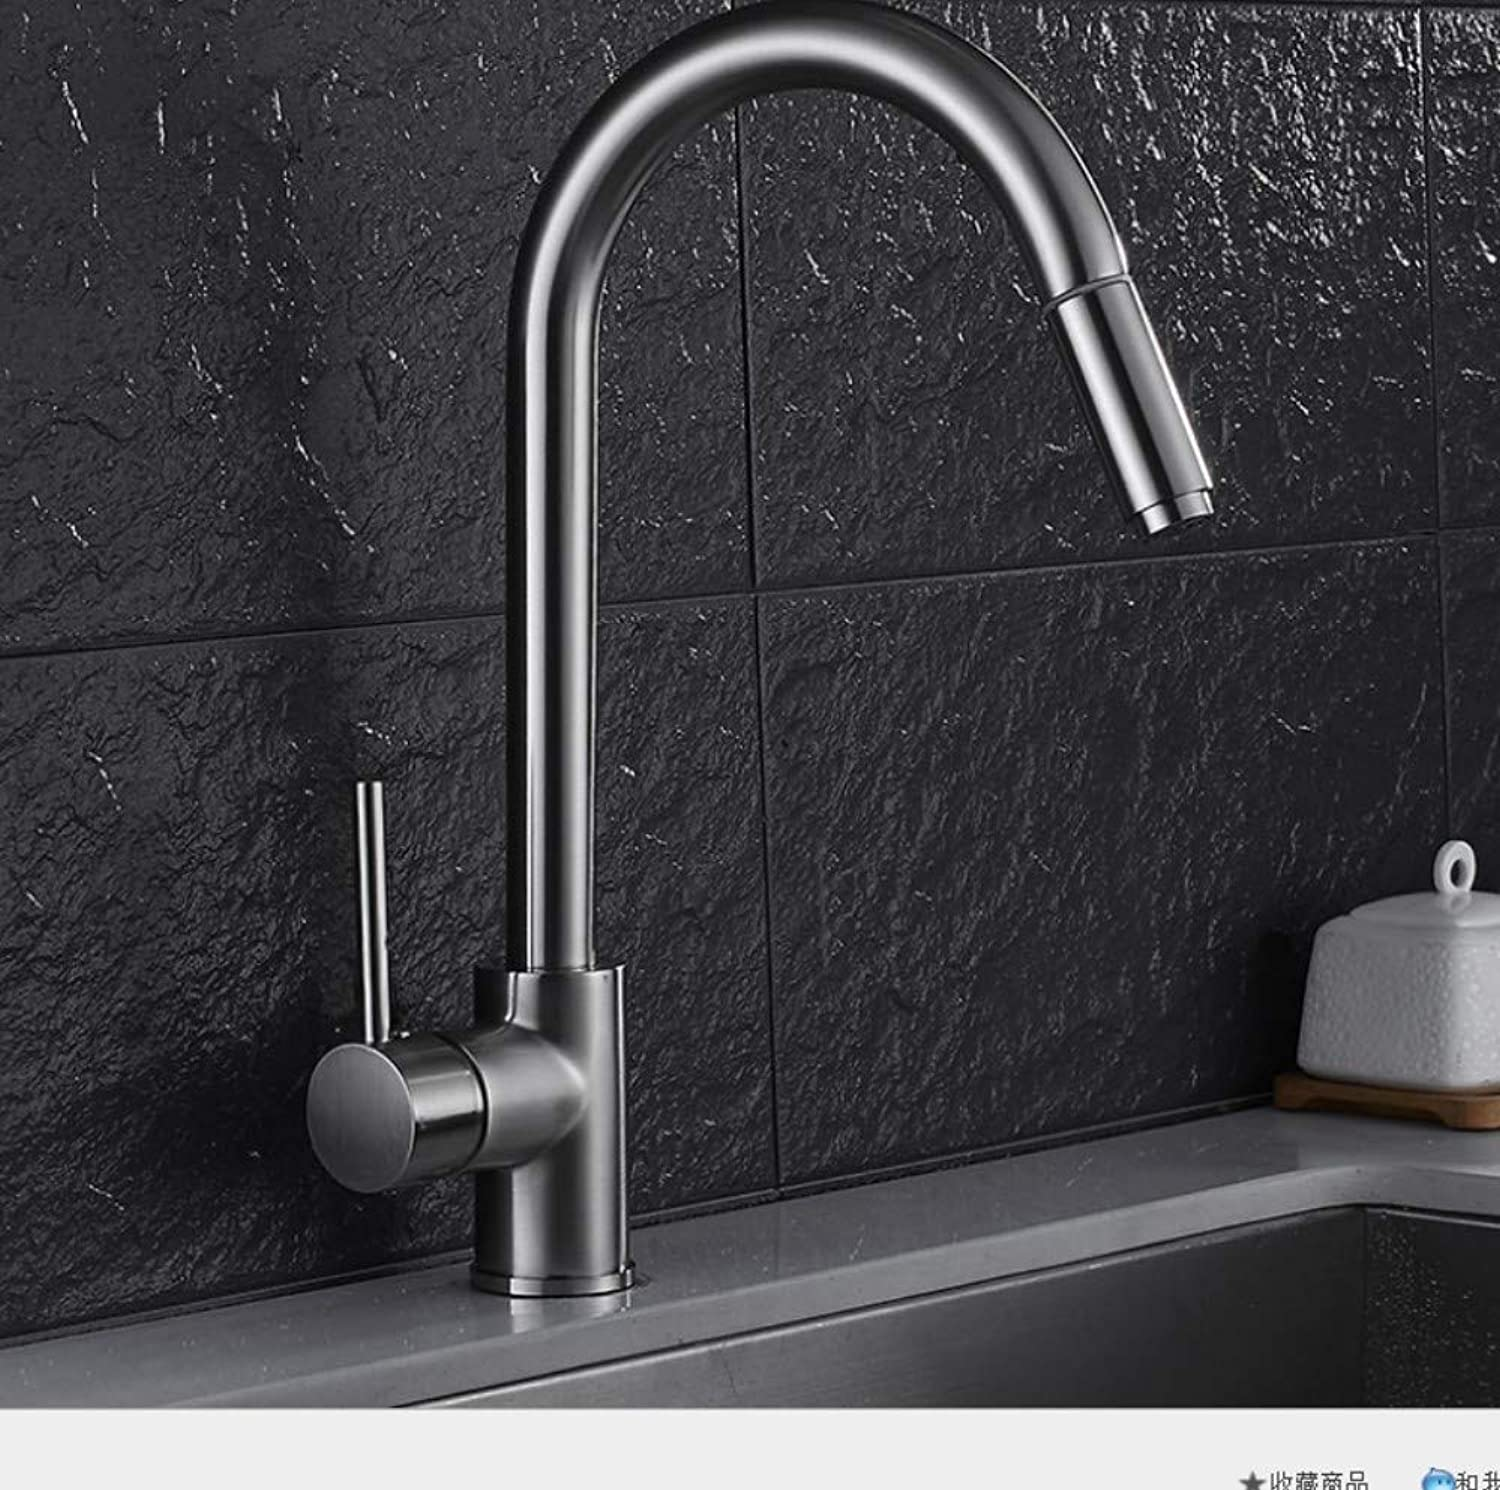 Bathroom Sink Basin Lever Mixer Tap European Drawing Faucet Drawing Kitchen Faucet Tank Washing Pot Cold and Hot Faucet